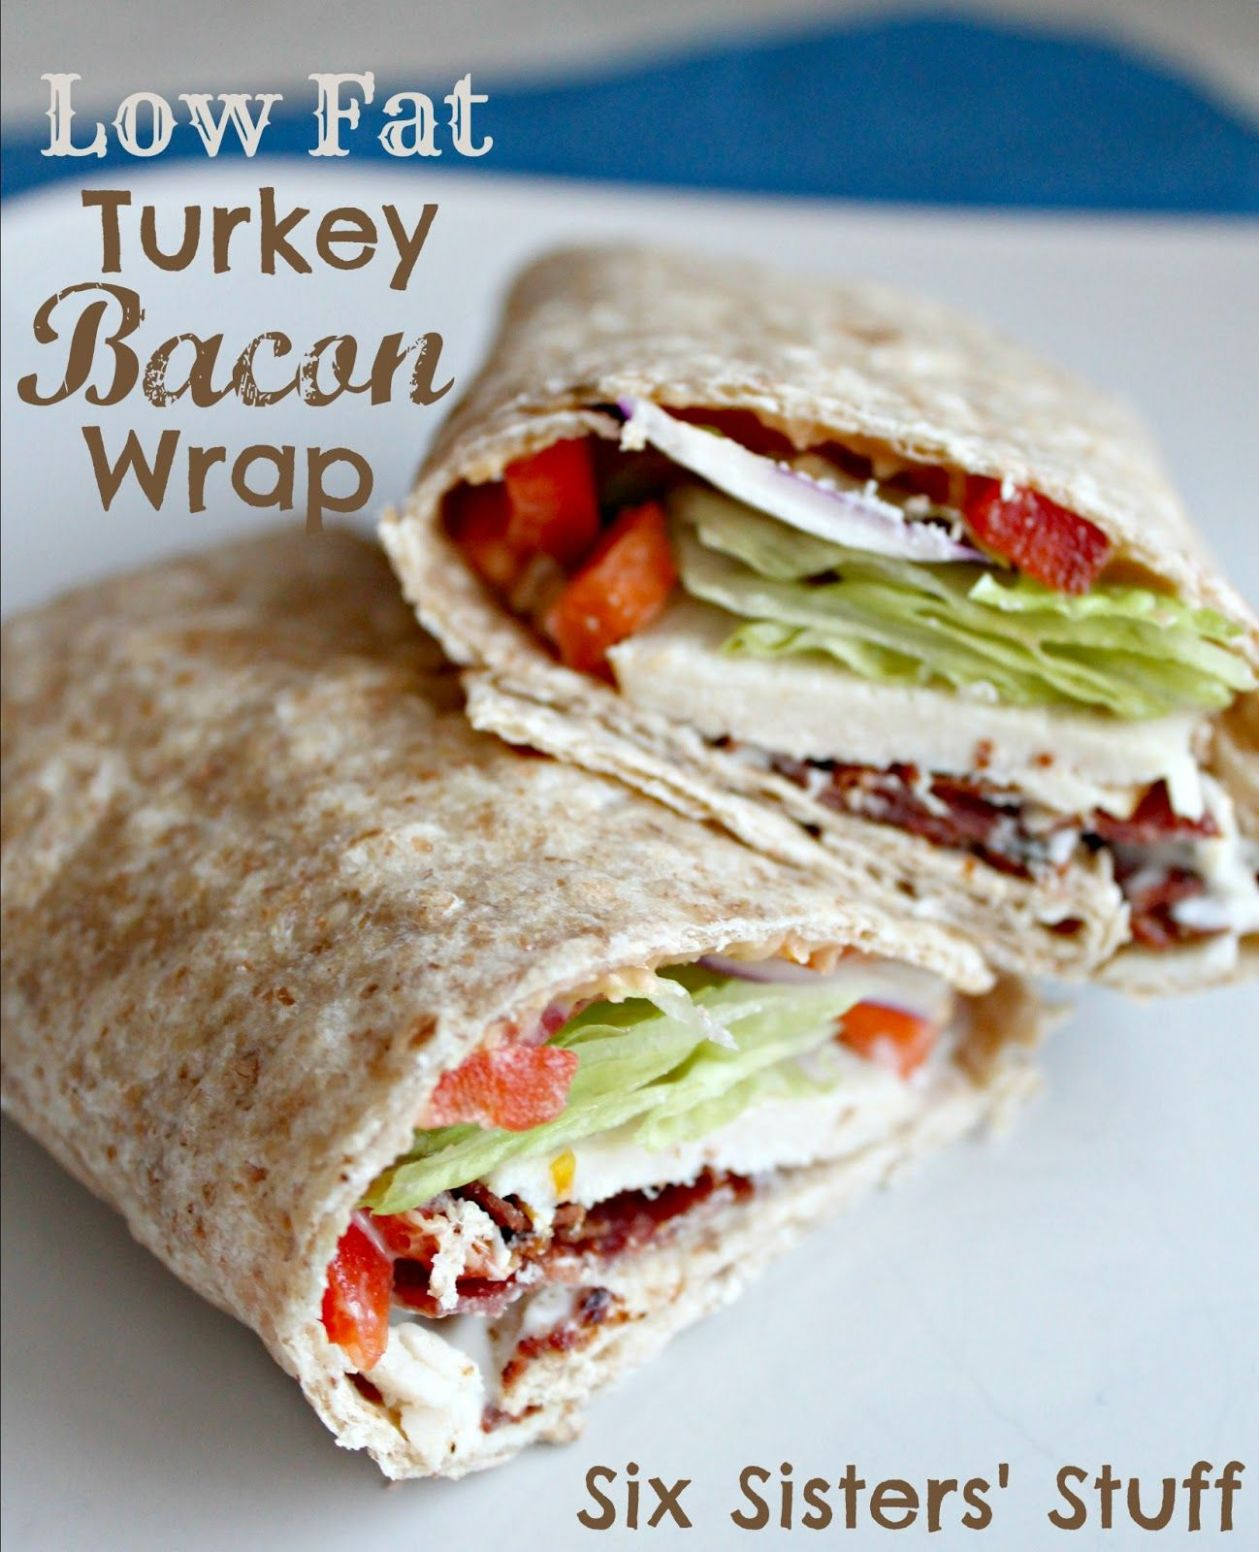 Low Fat Turkey Bacon Wrap